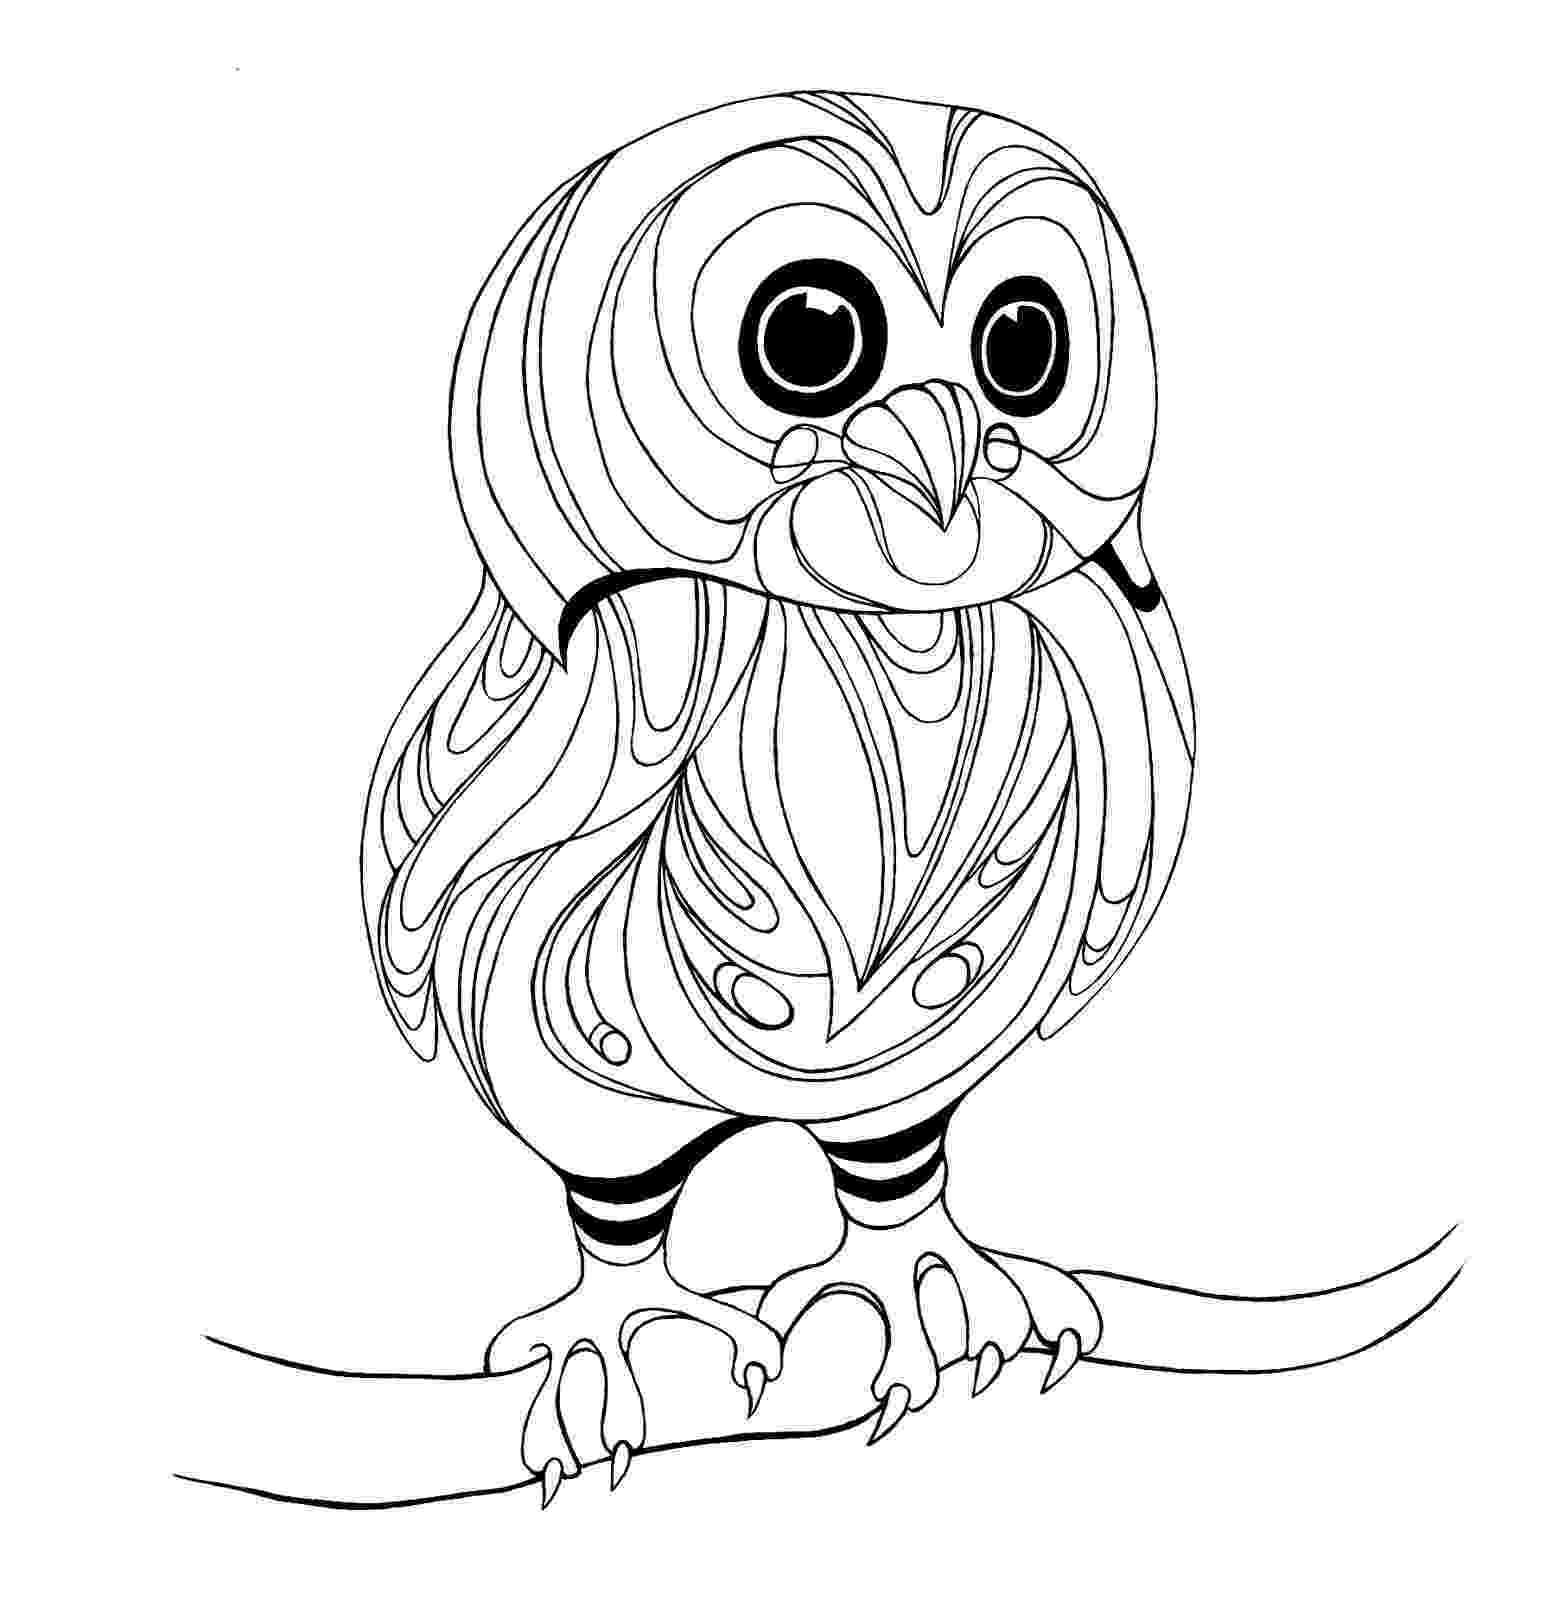 colored pictures of owls owls for kids owls kids coloring pages pictures of colored owls